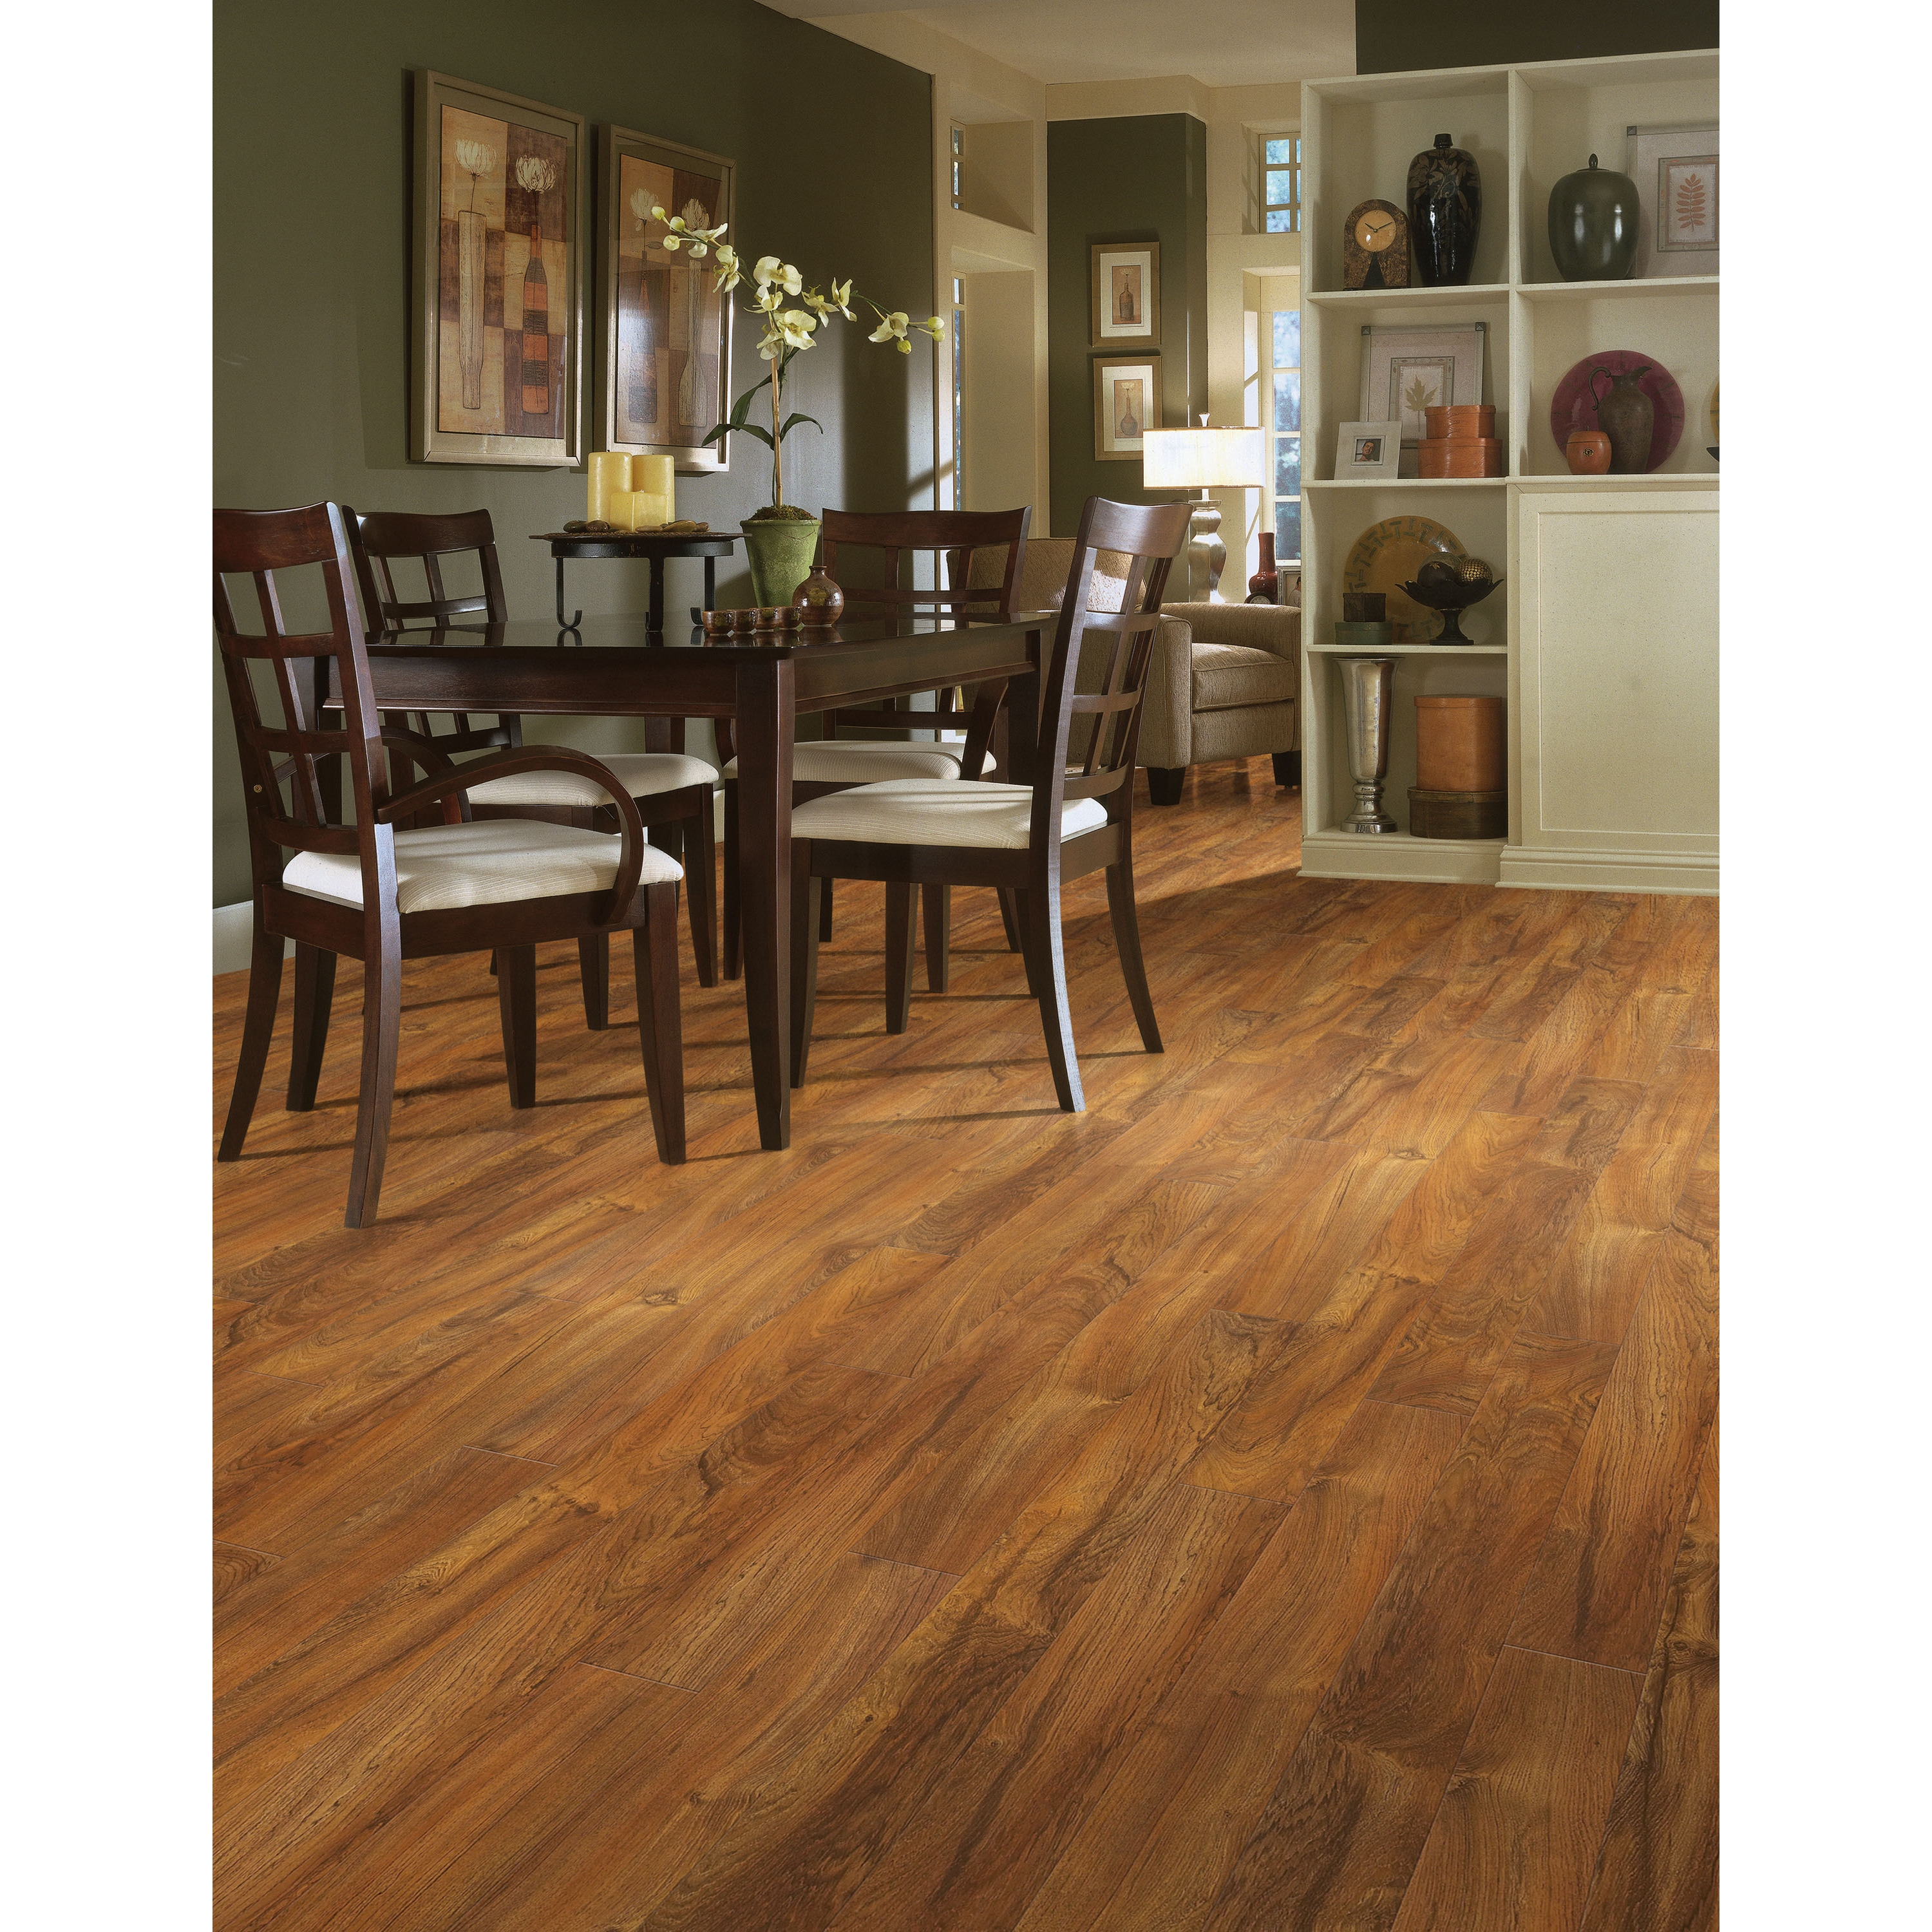 Shaw Industries Americana Collection Laminate Flooring 25 19 Sq Ft Free Shipping Today Com 8385927